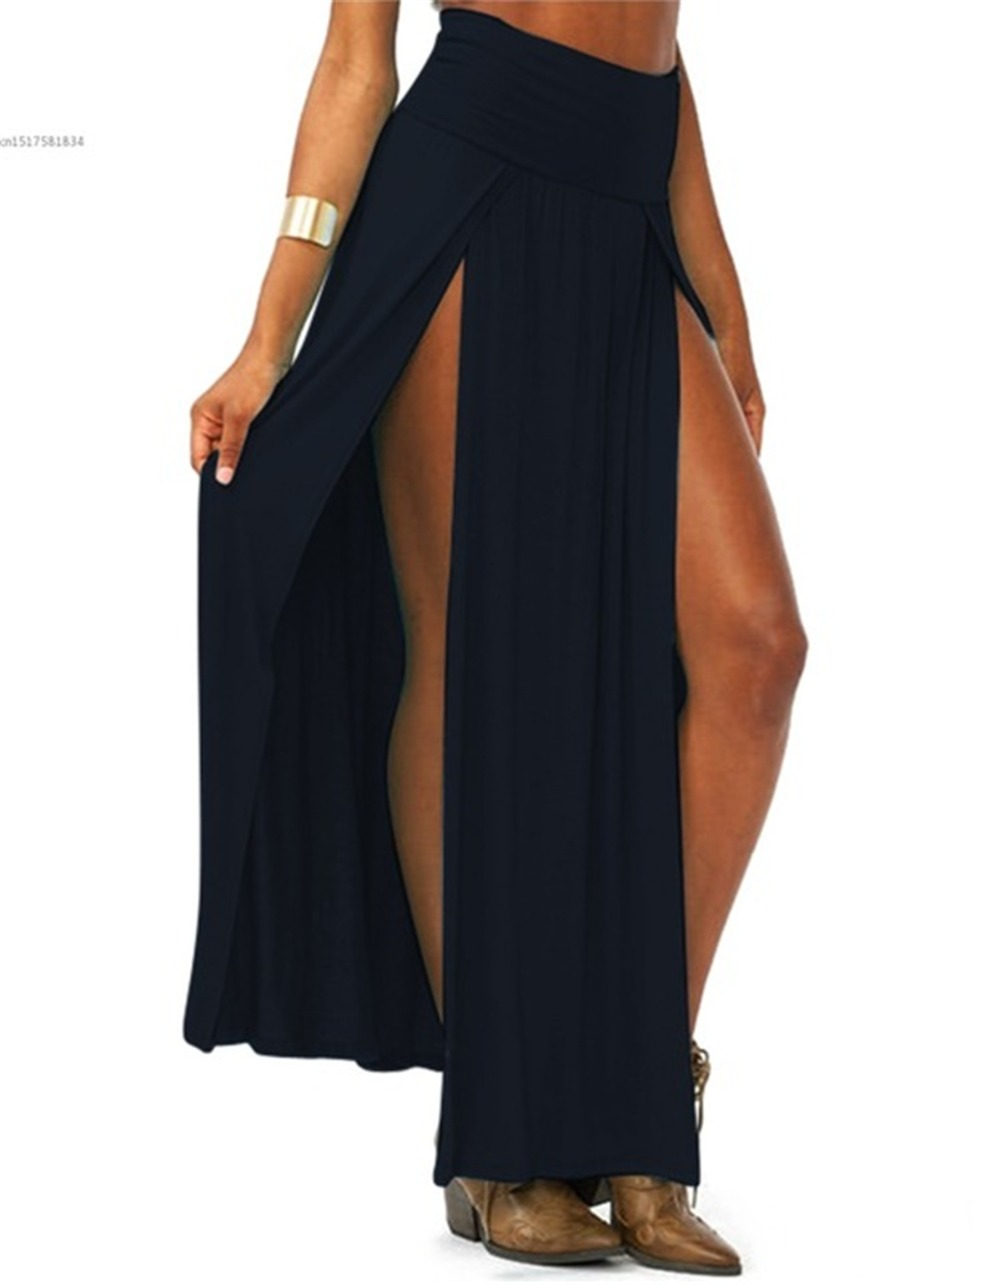 2019-New-Arrival-High-Waisted-Sexy-Womens-Double-Slits-Summer-Solid-Long-Maxi-Skirt-Wholesale-51.jpg_640x640 (2)